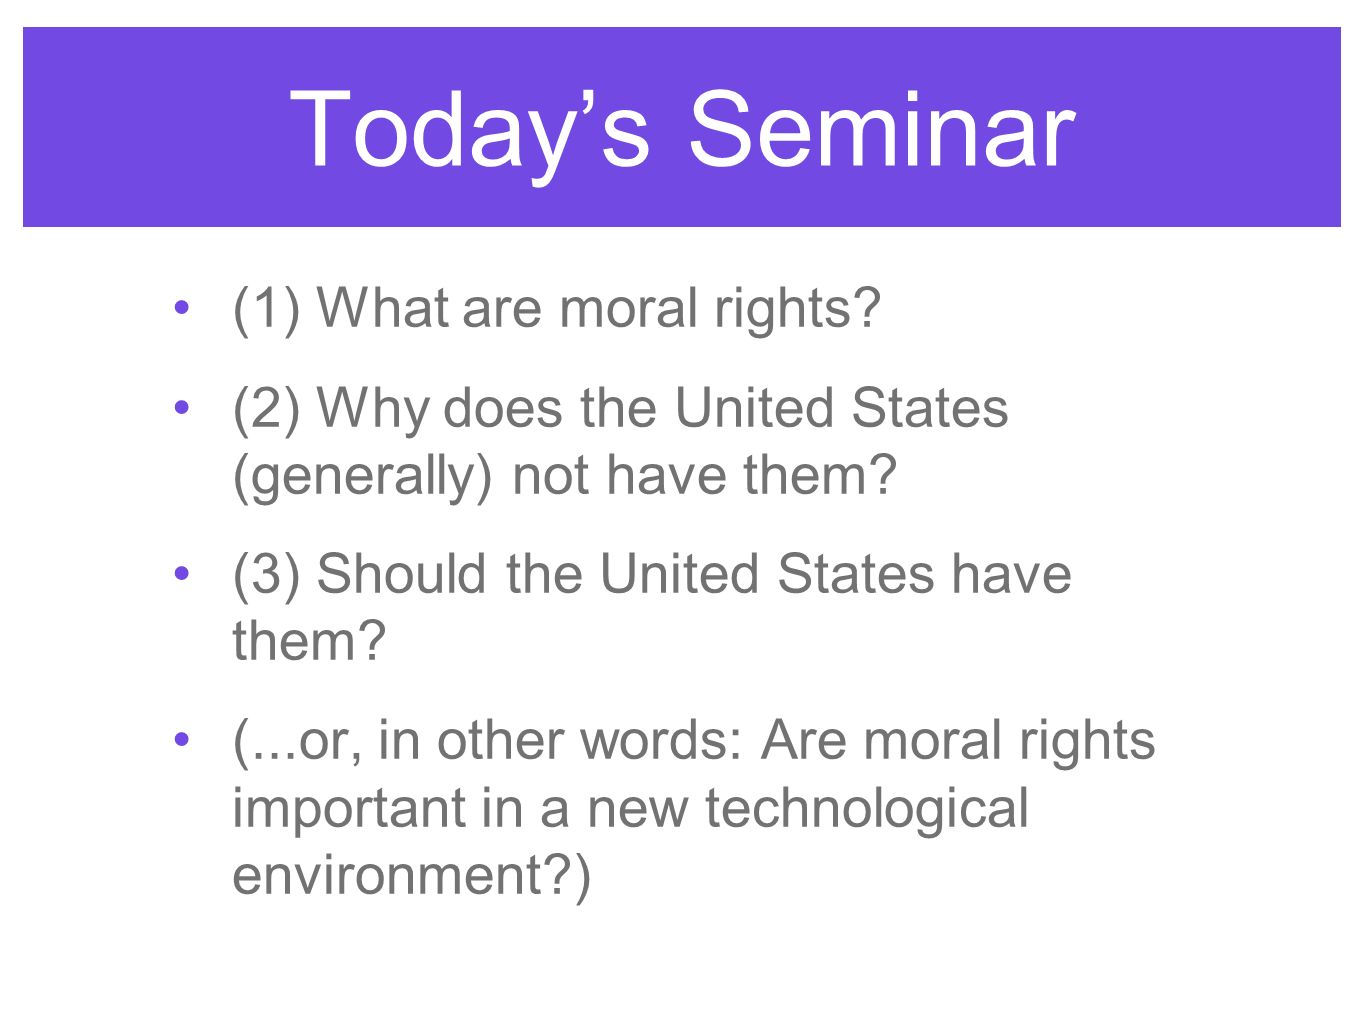 Today's Seminar (1) What are moral rights